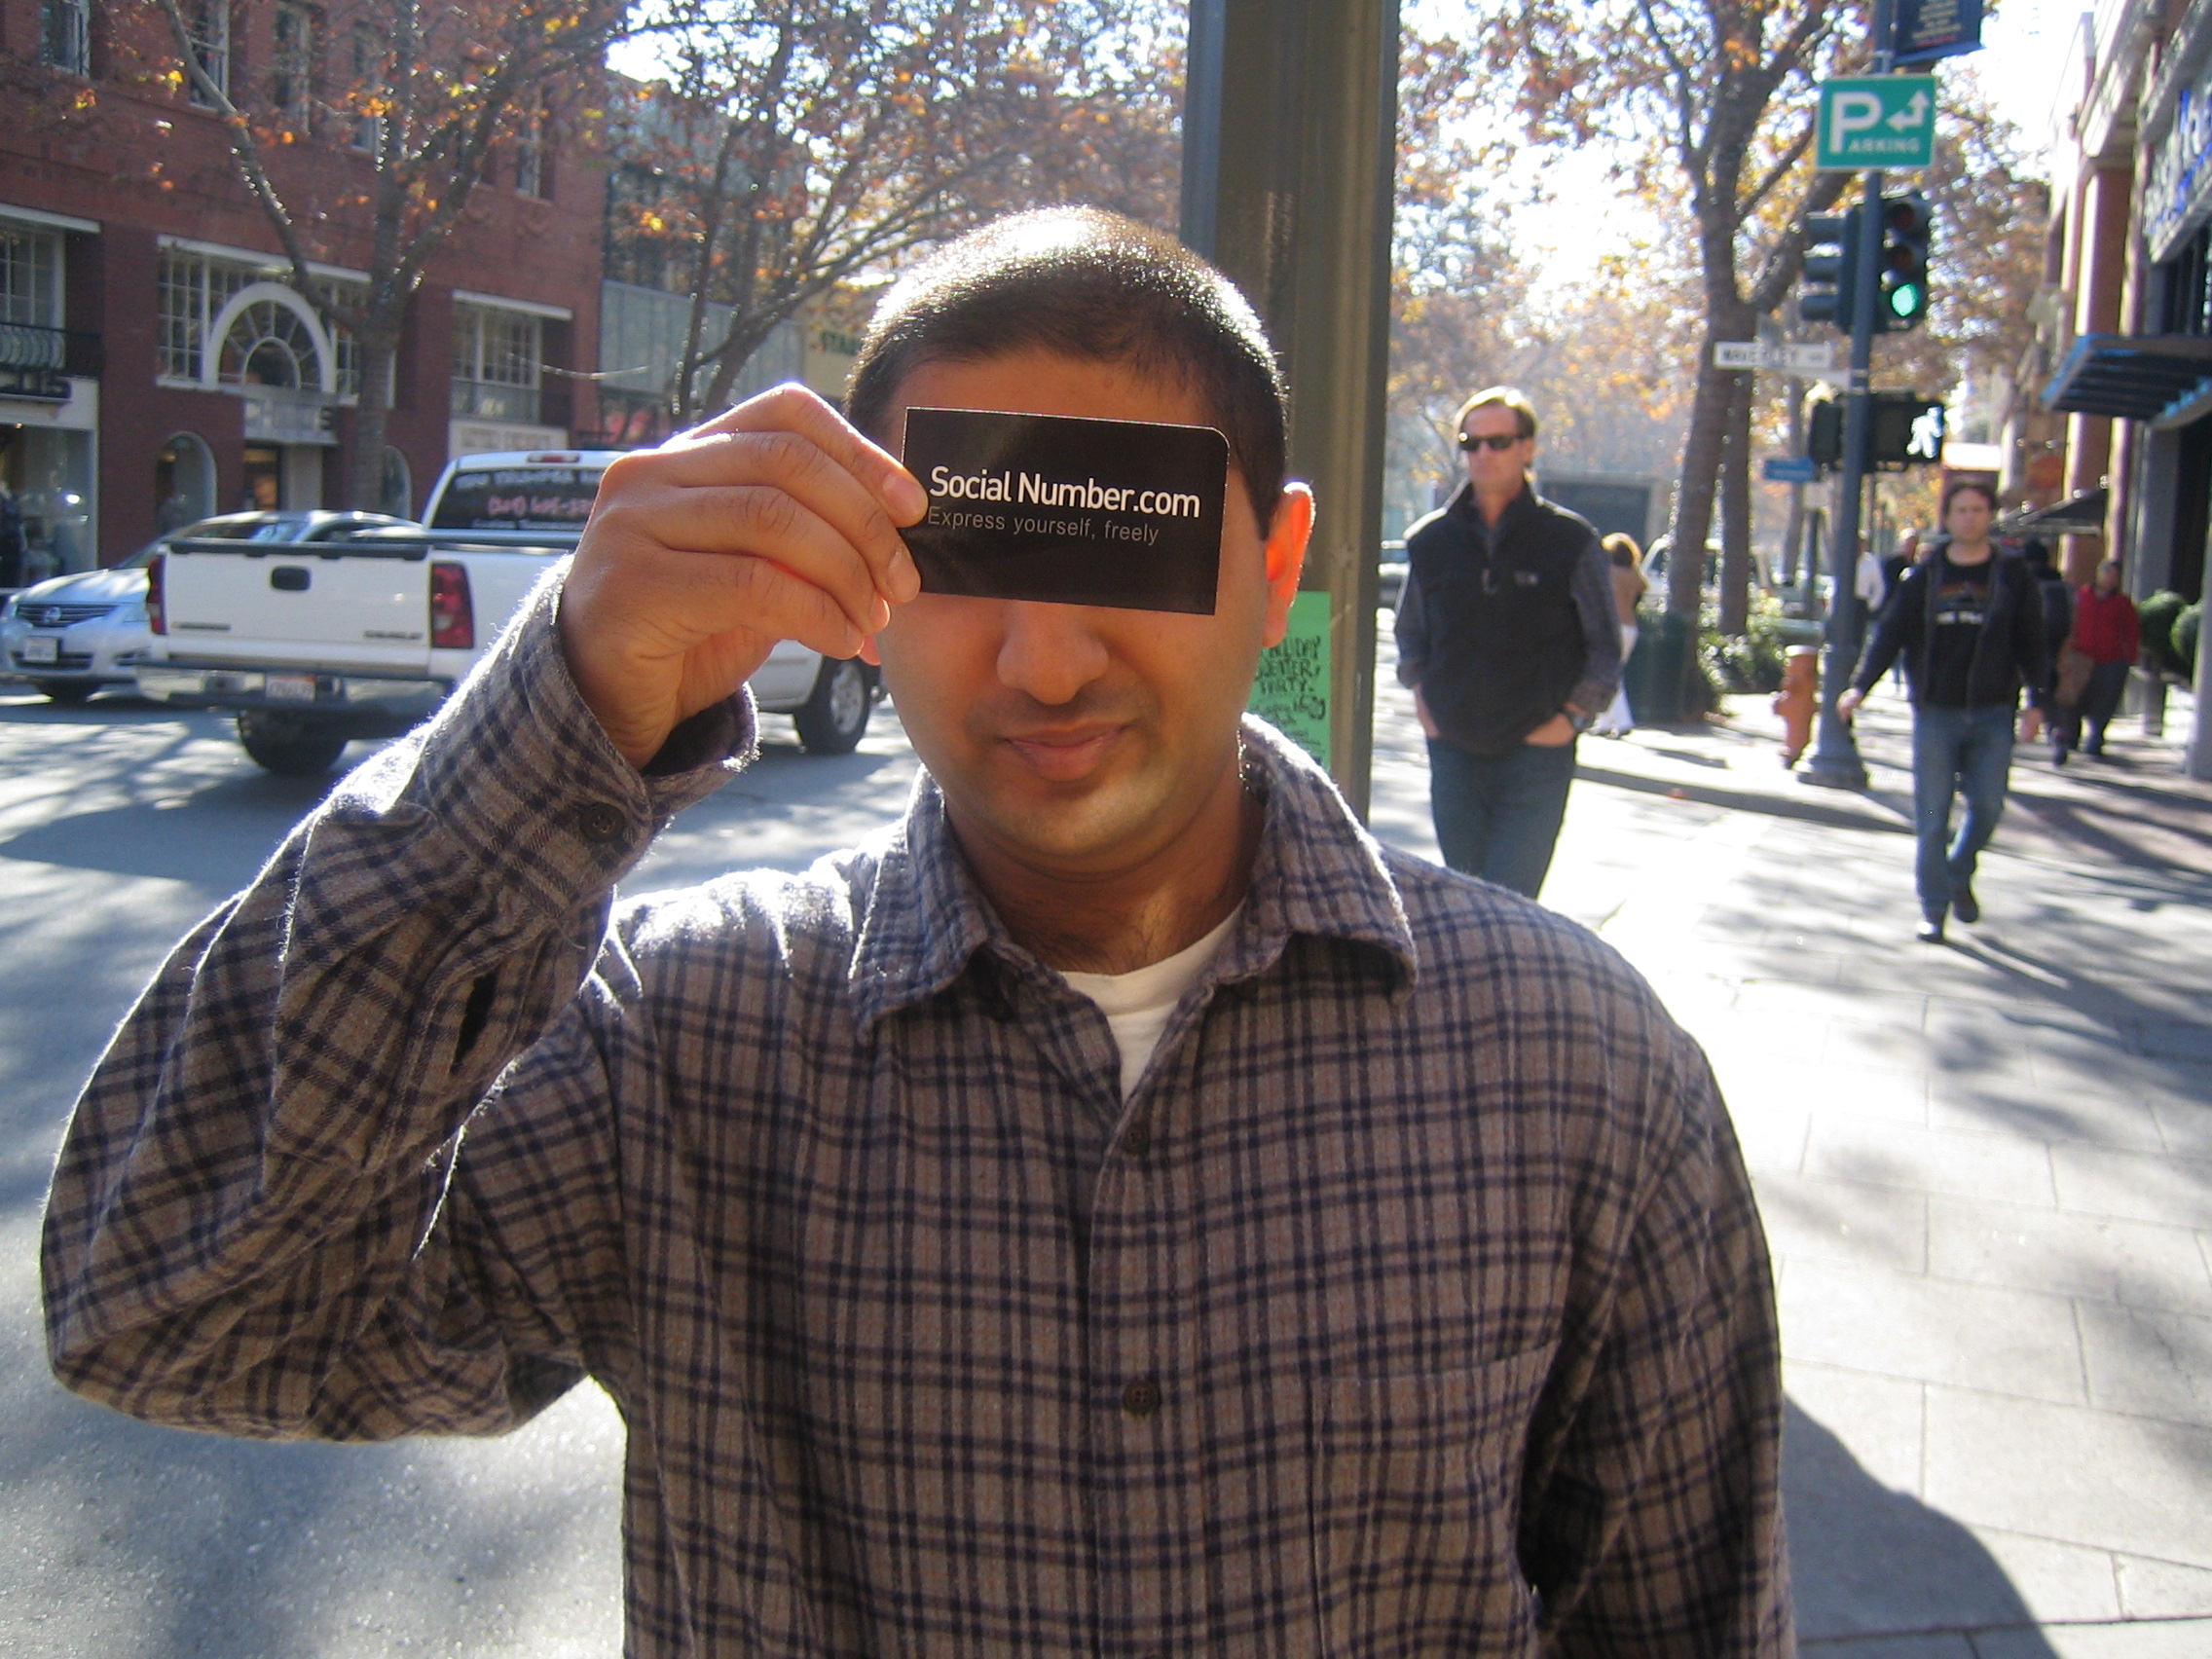 Social Number Stanford student holding business card anonymity